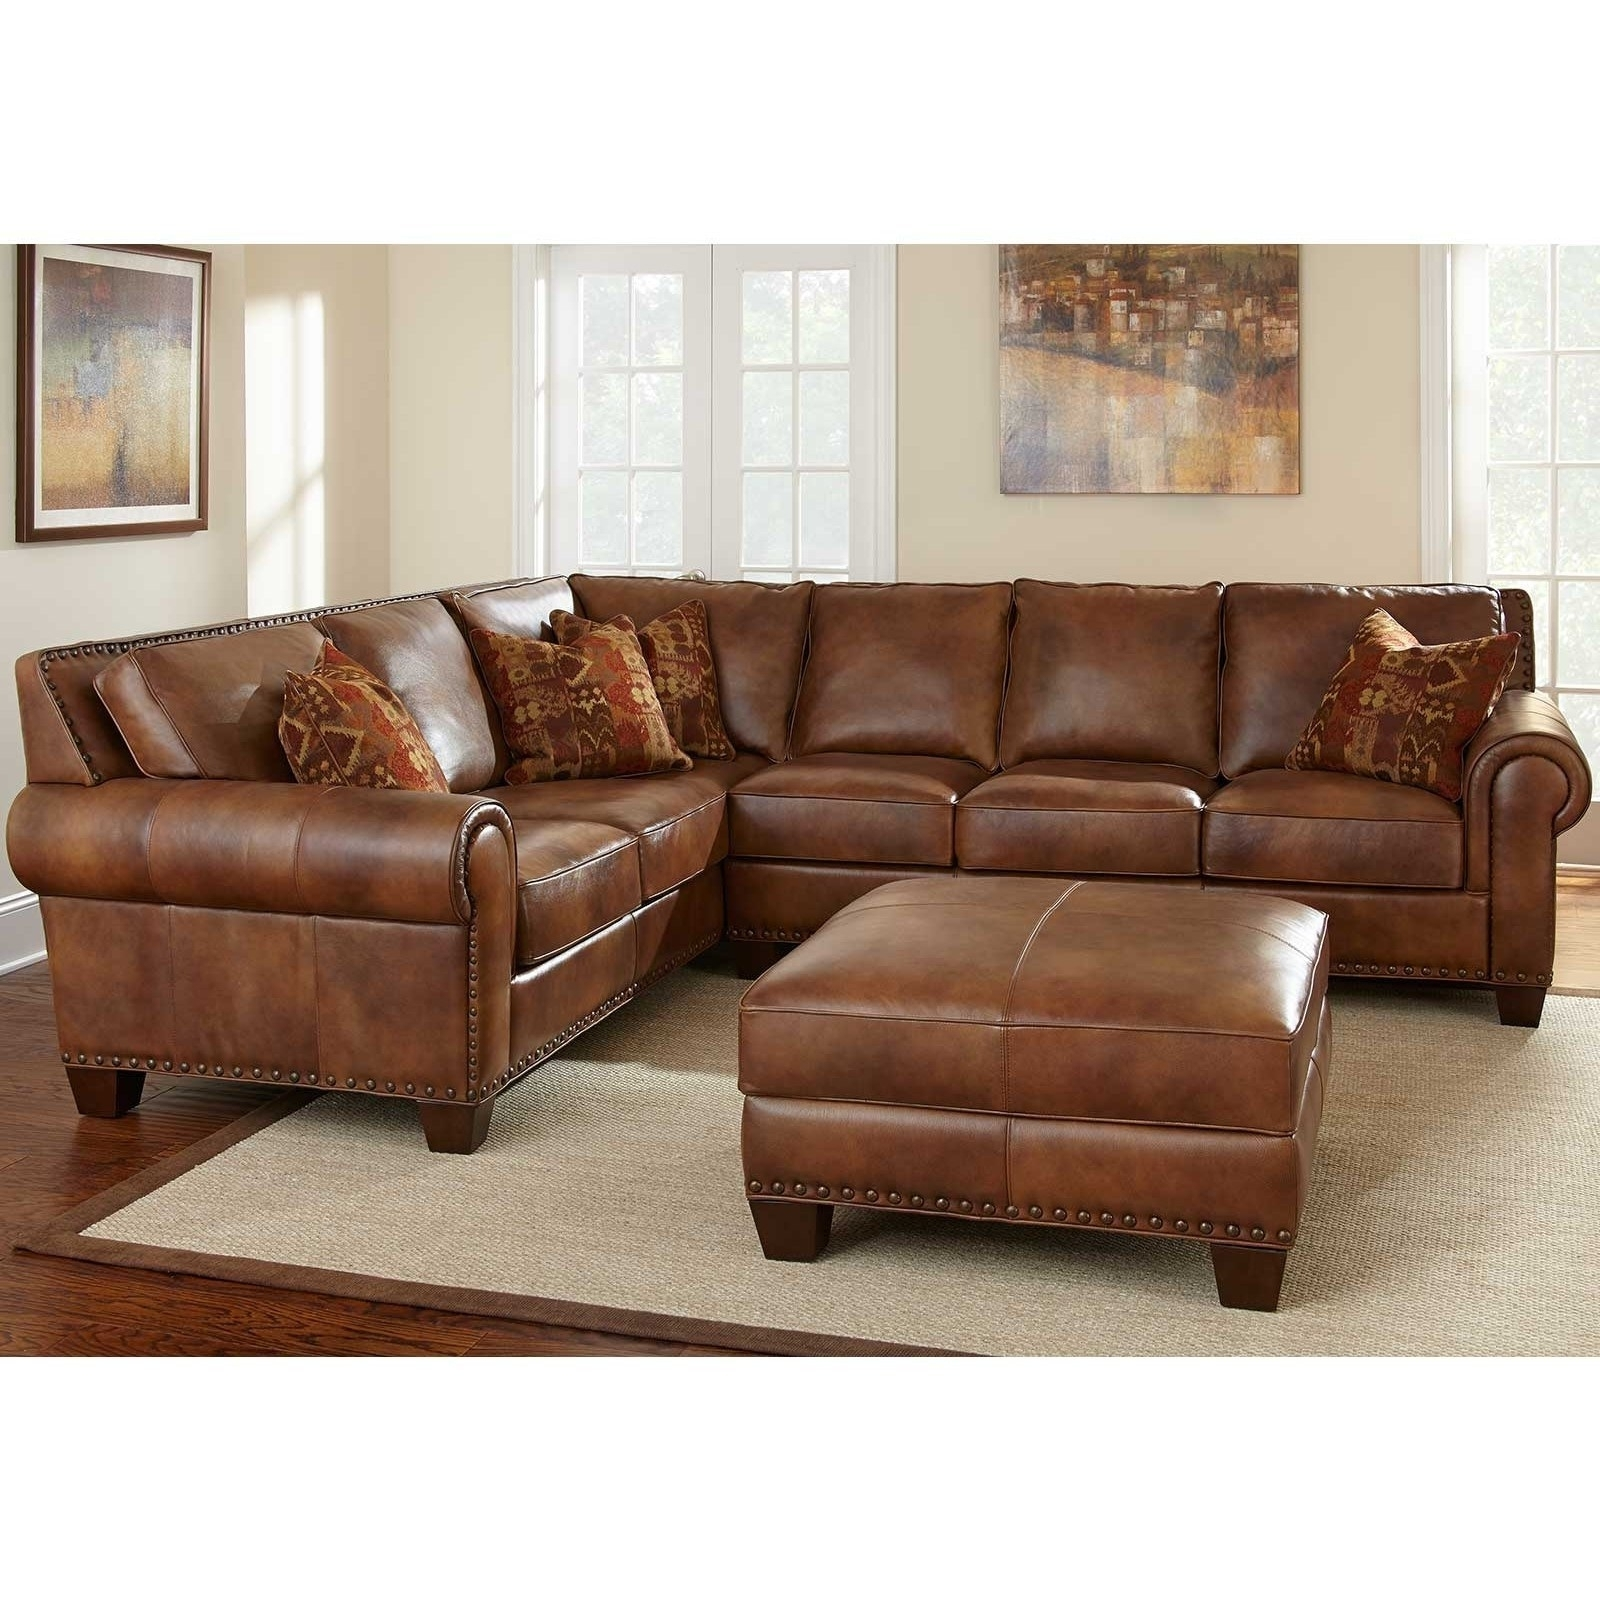 Most Recent Sectional Sofa Sales – Hotelsbacau In North Carolina Sectional Sofas (View 10 of 15)